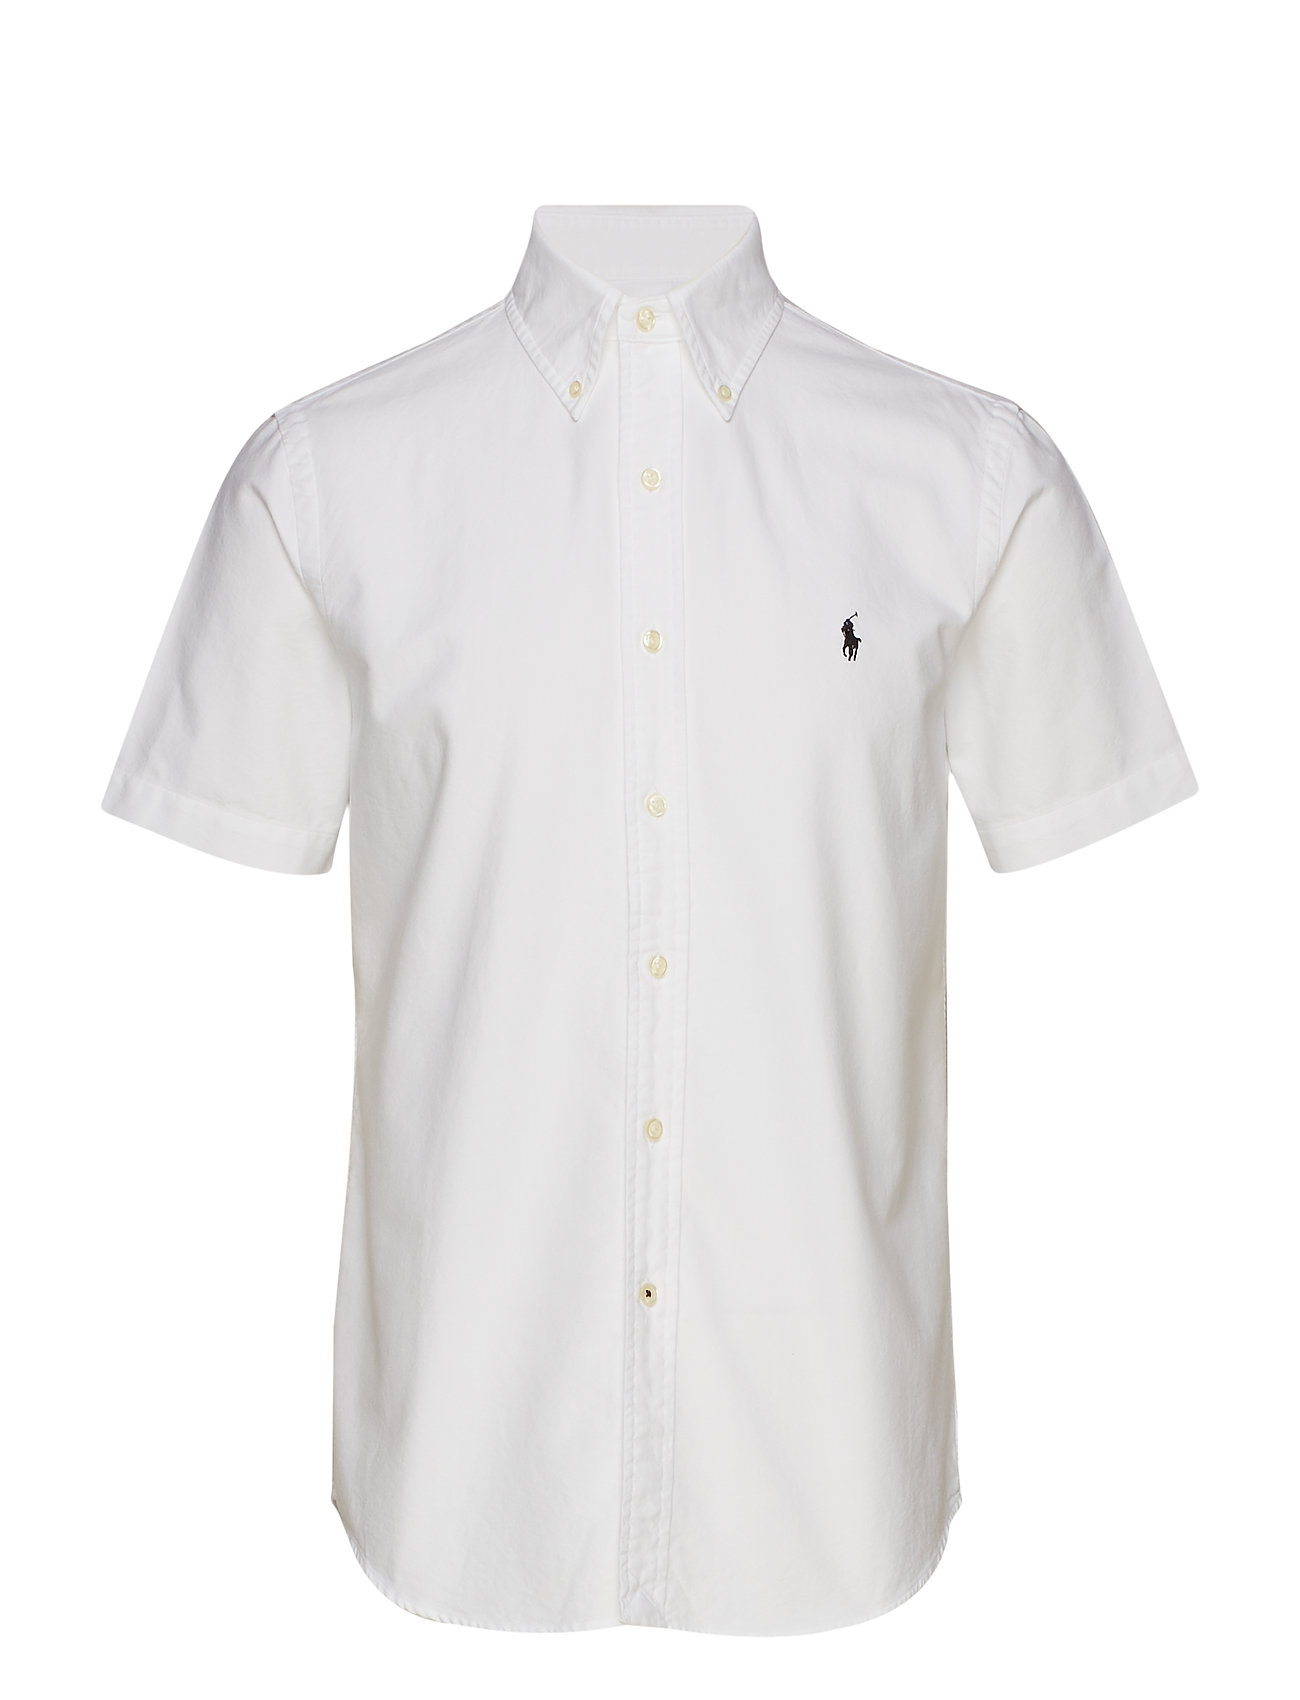 Polo Ralph Lauren OXFORD-CUSSBDPPCSPT - BSR WHITE